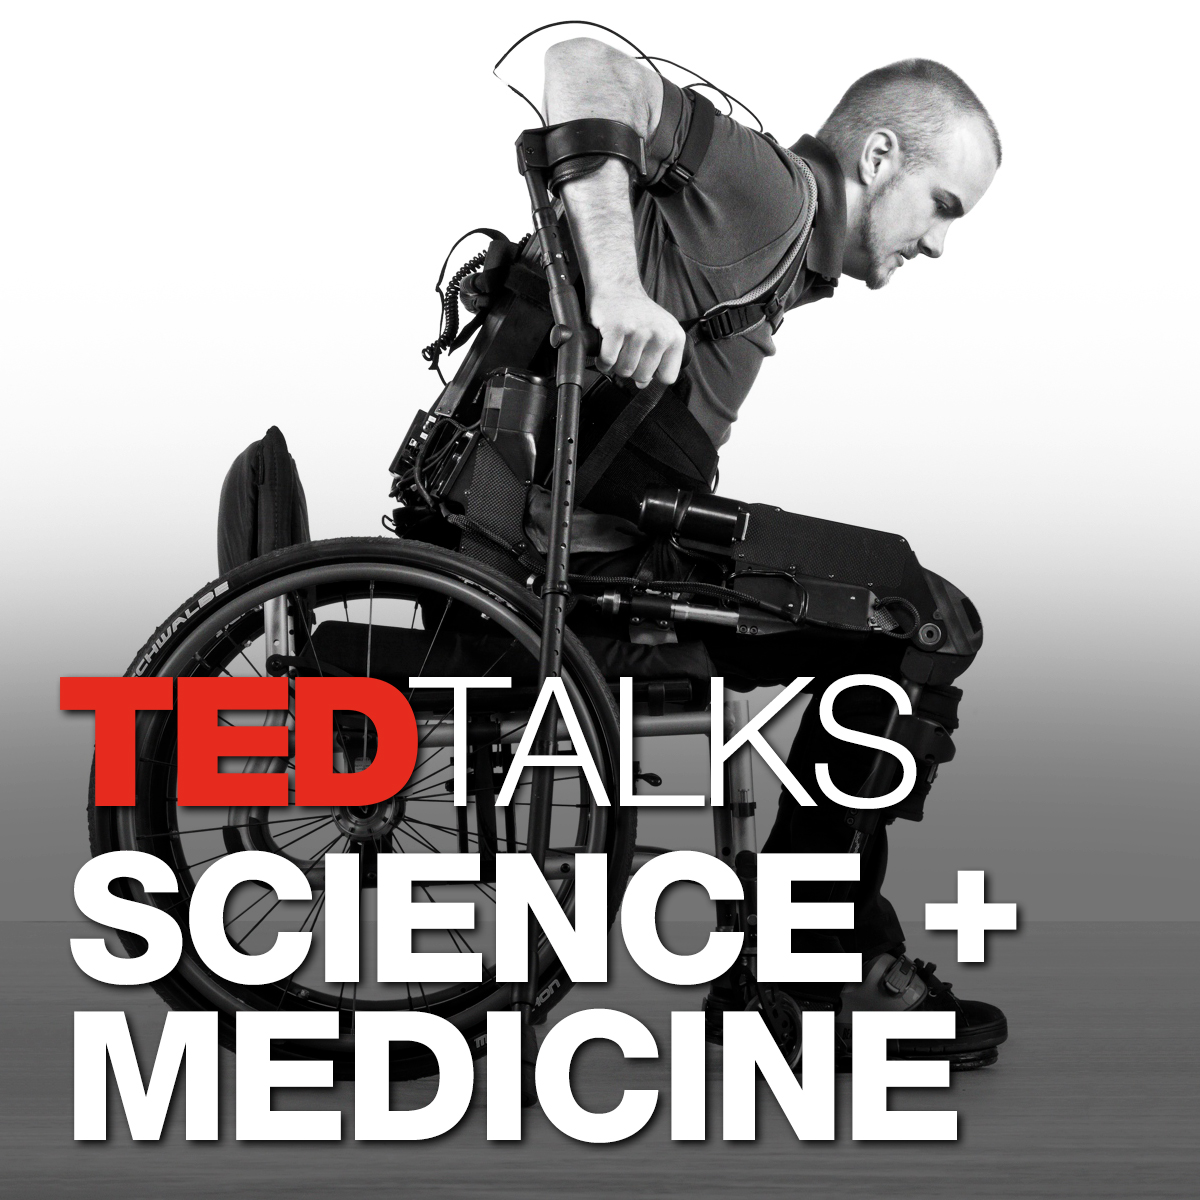 TEDTalks Science and Medicine